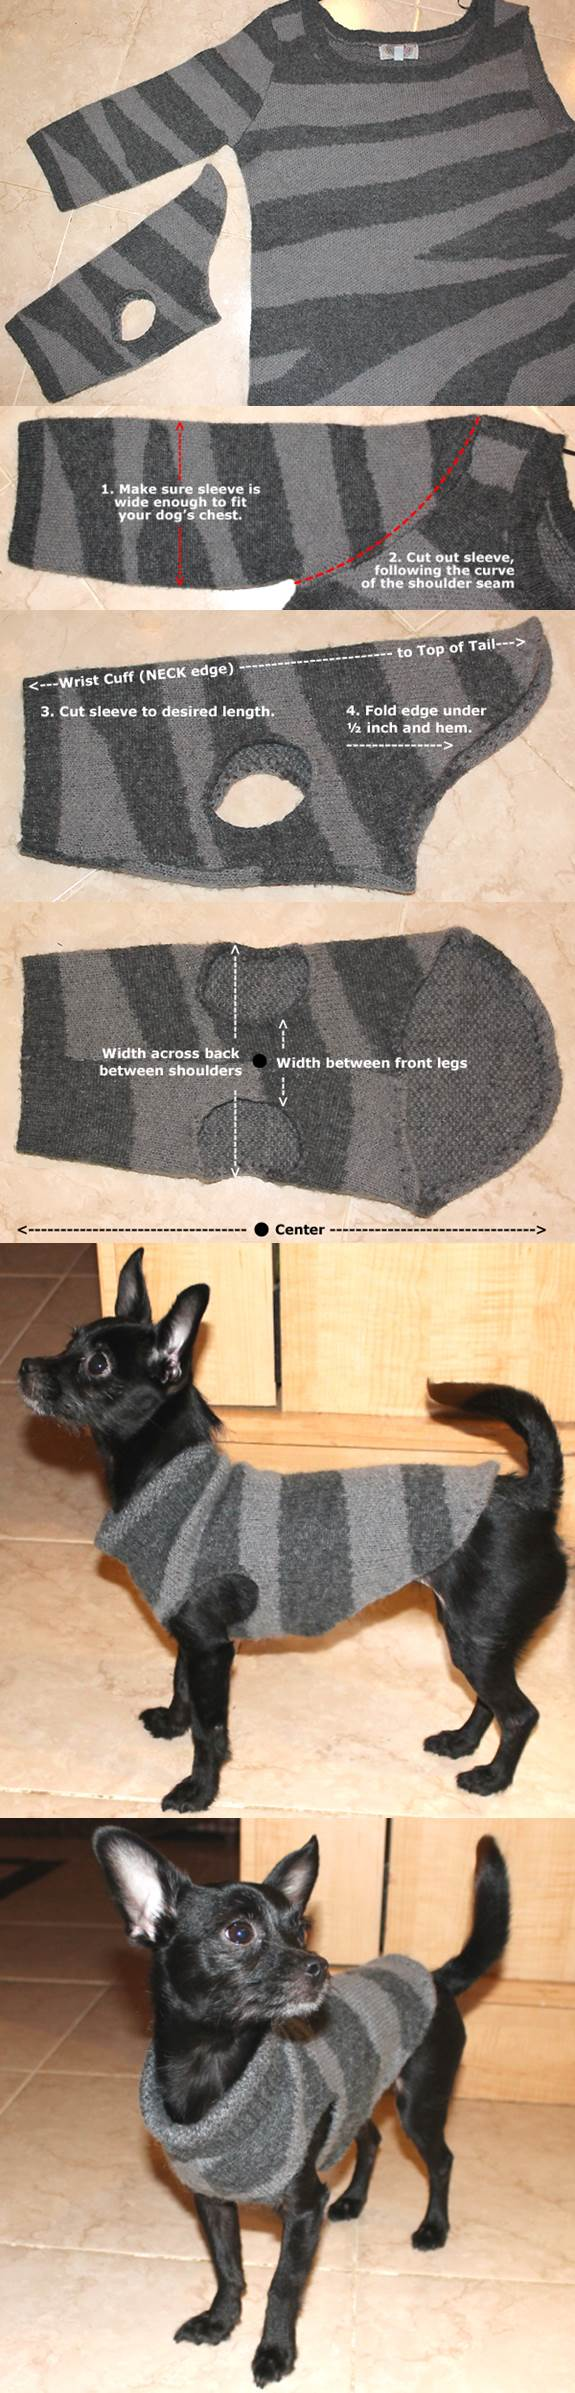 Diy Dog Sweater From A Used Sweater Sleeve Lovepetsdiy Com